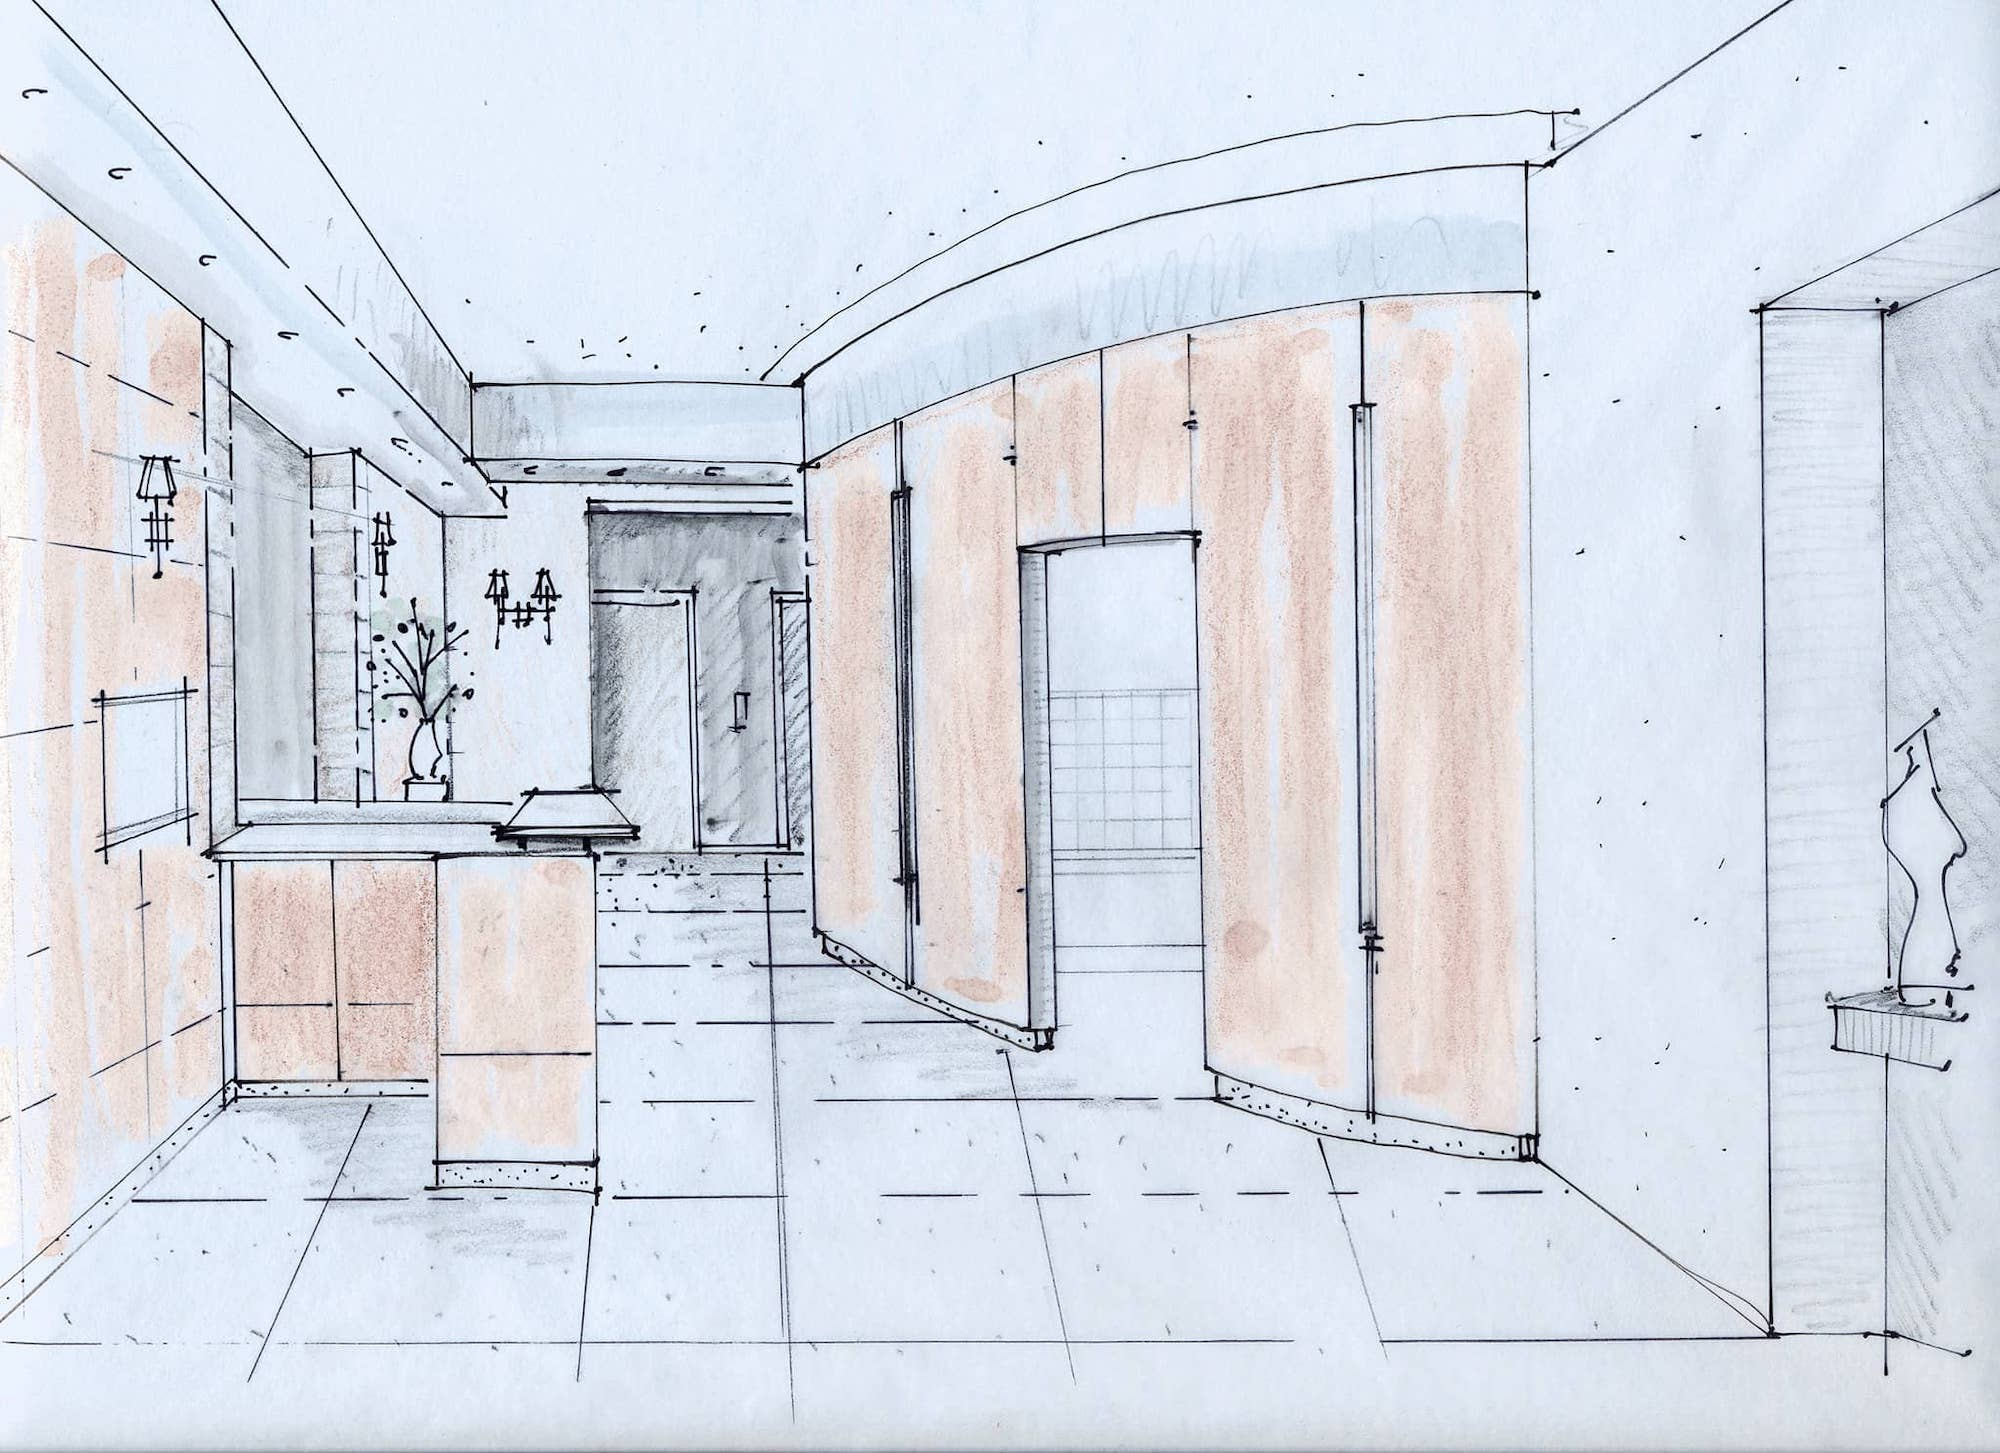 Architectural sketches.